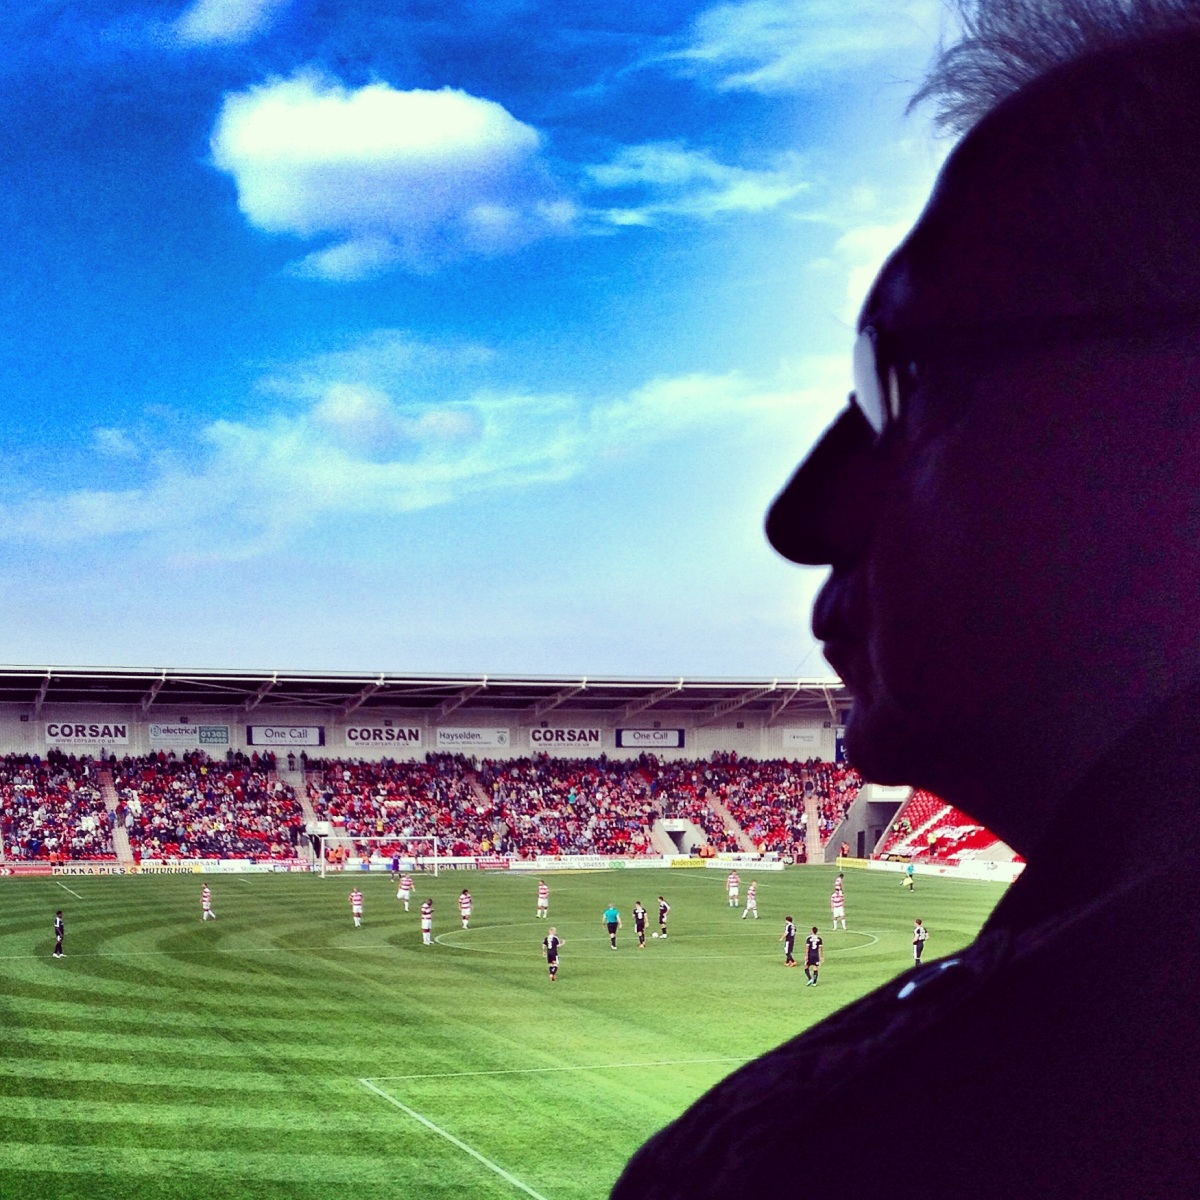 Doncaster Rovers 0-1 Scunthorpe United: 250 word match report